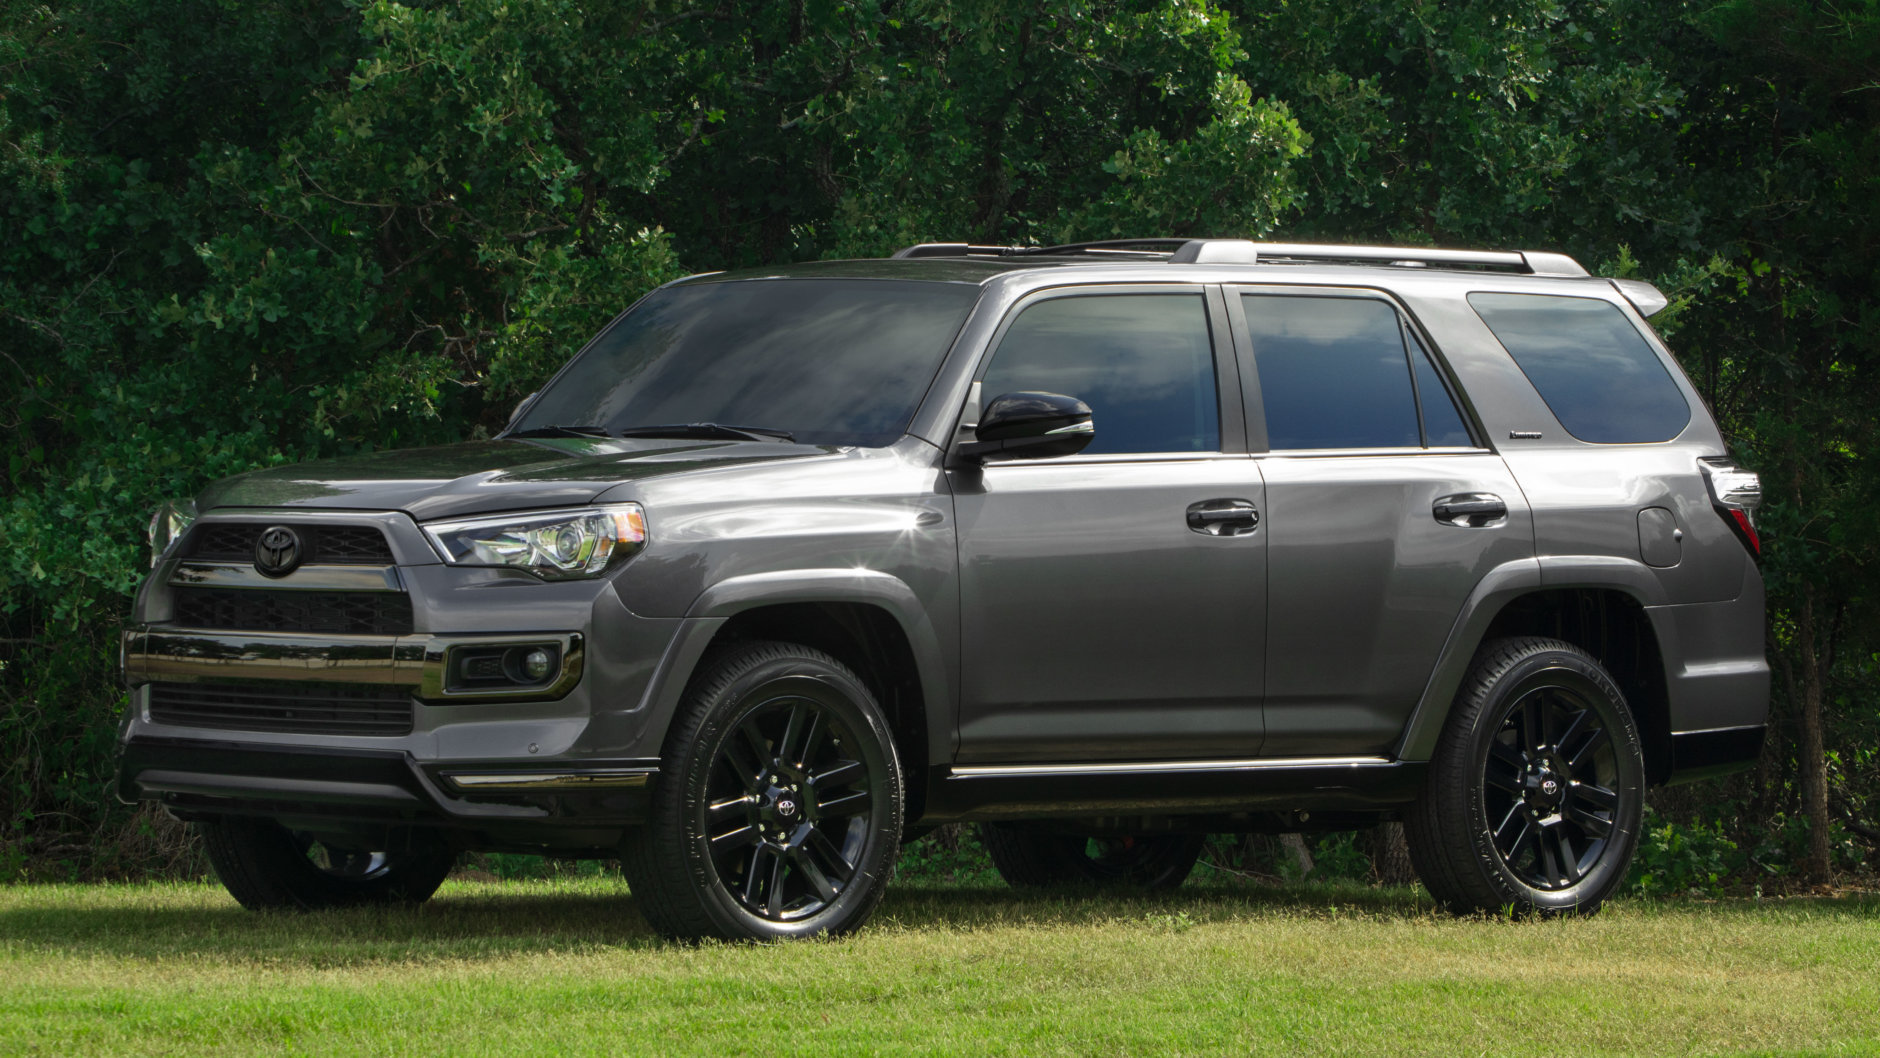 No. 4: Toyota 4Runner – 2.7 percent on the road in D.C. have 200,000-plus miles